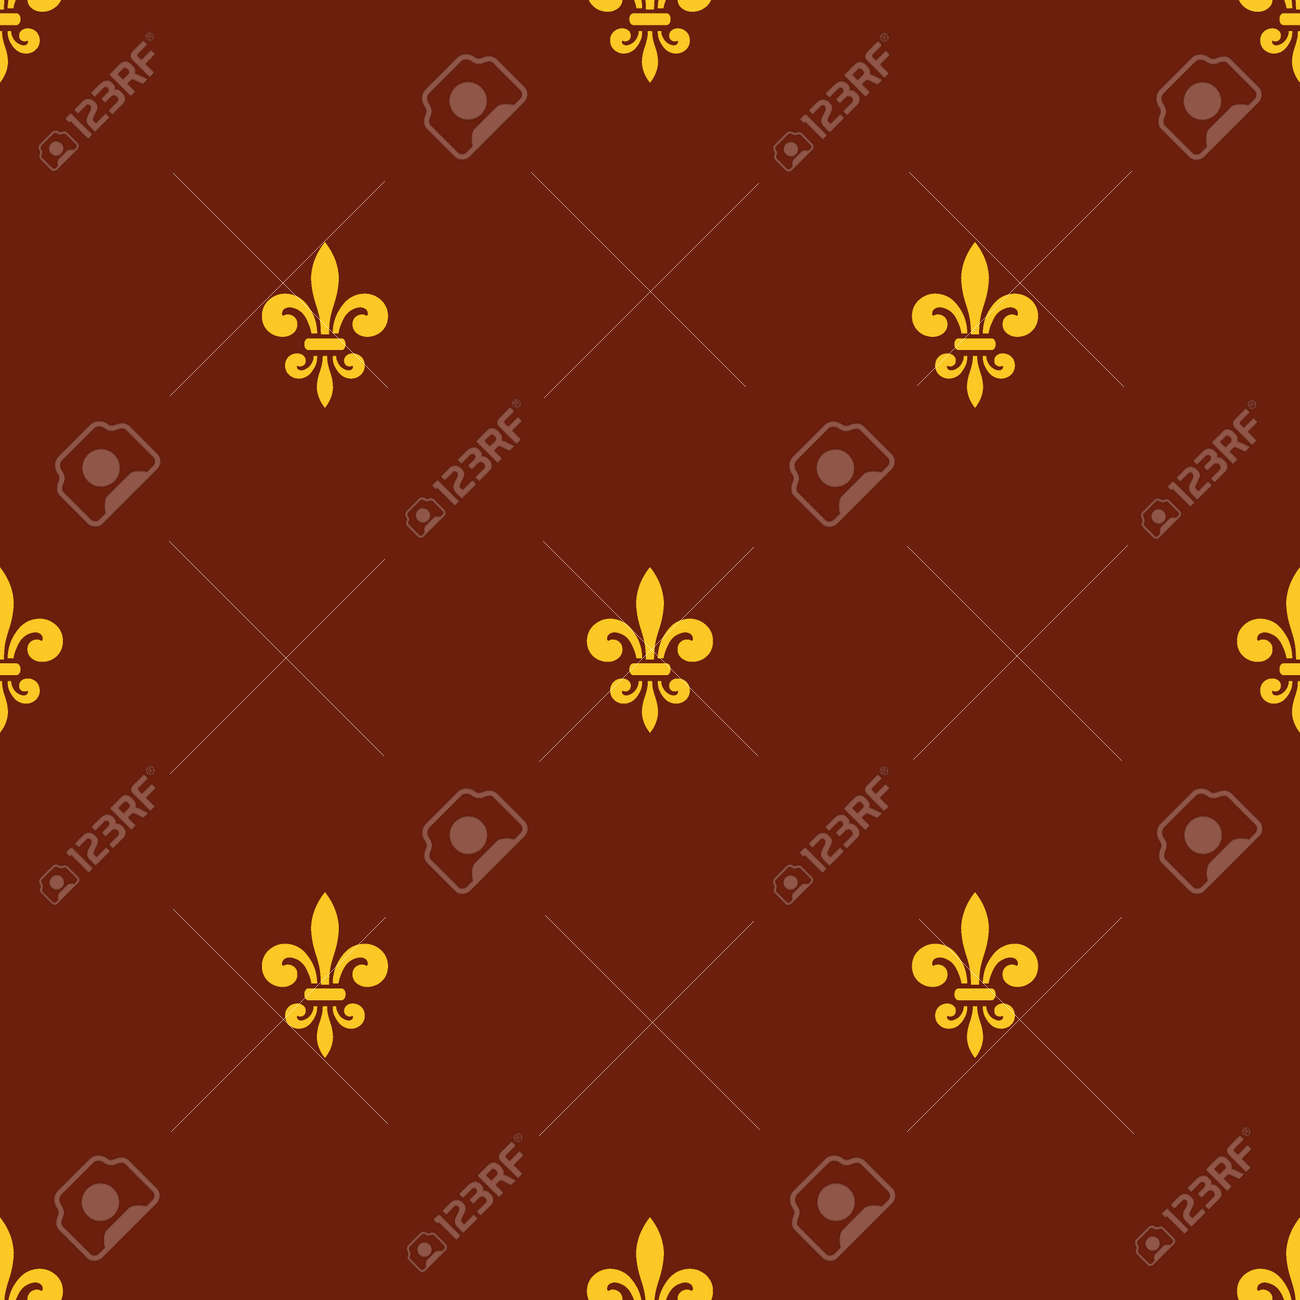 Seamless Pattern With Gold Fleur De Lis On Brown Background